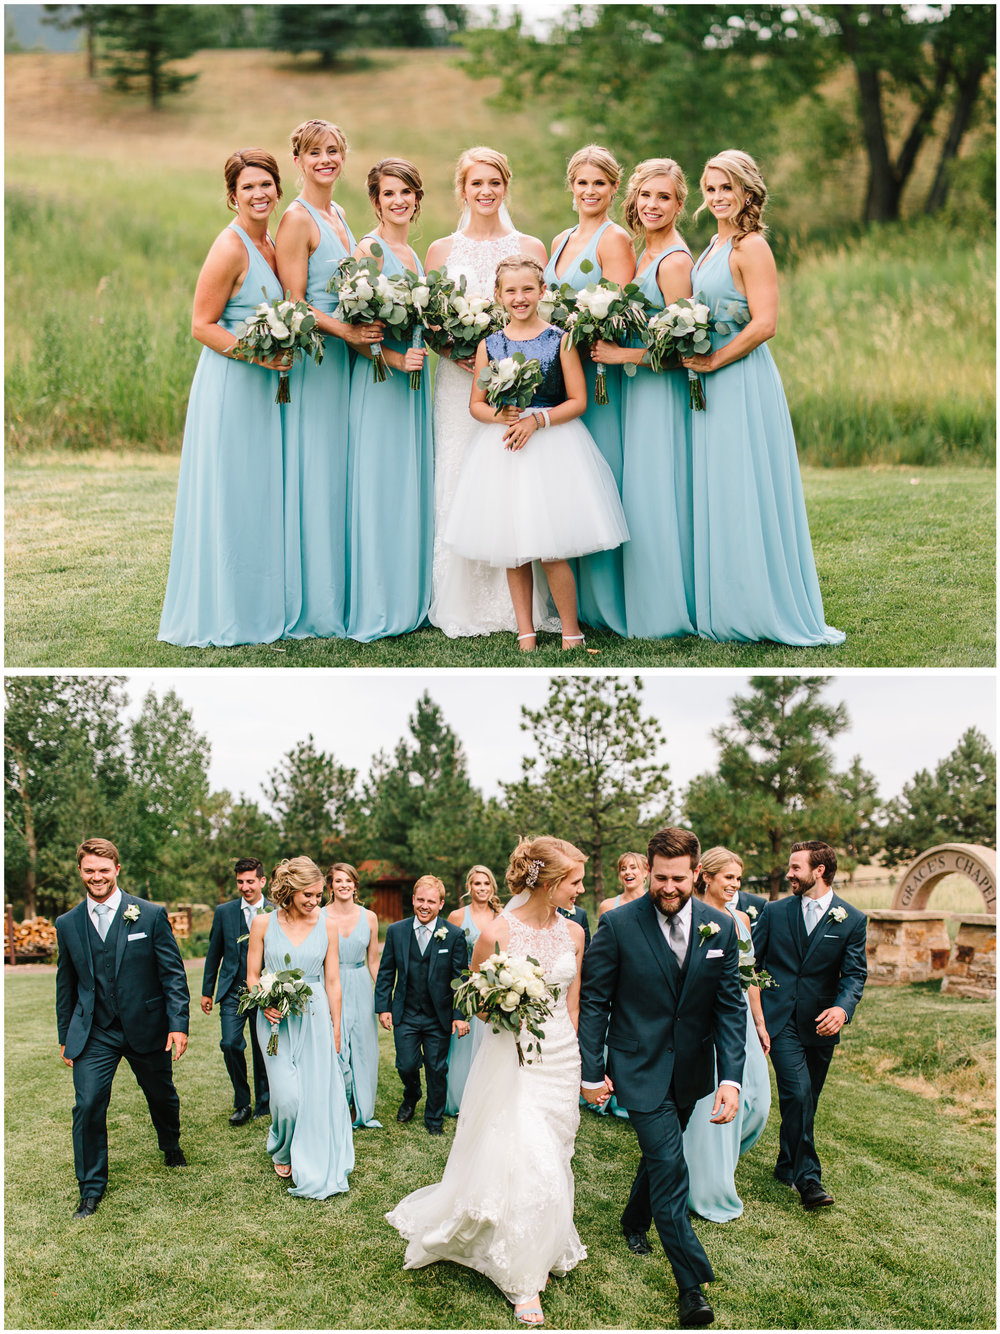 Spruce_Mountain_Ranch_Wedding_38.jpg